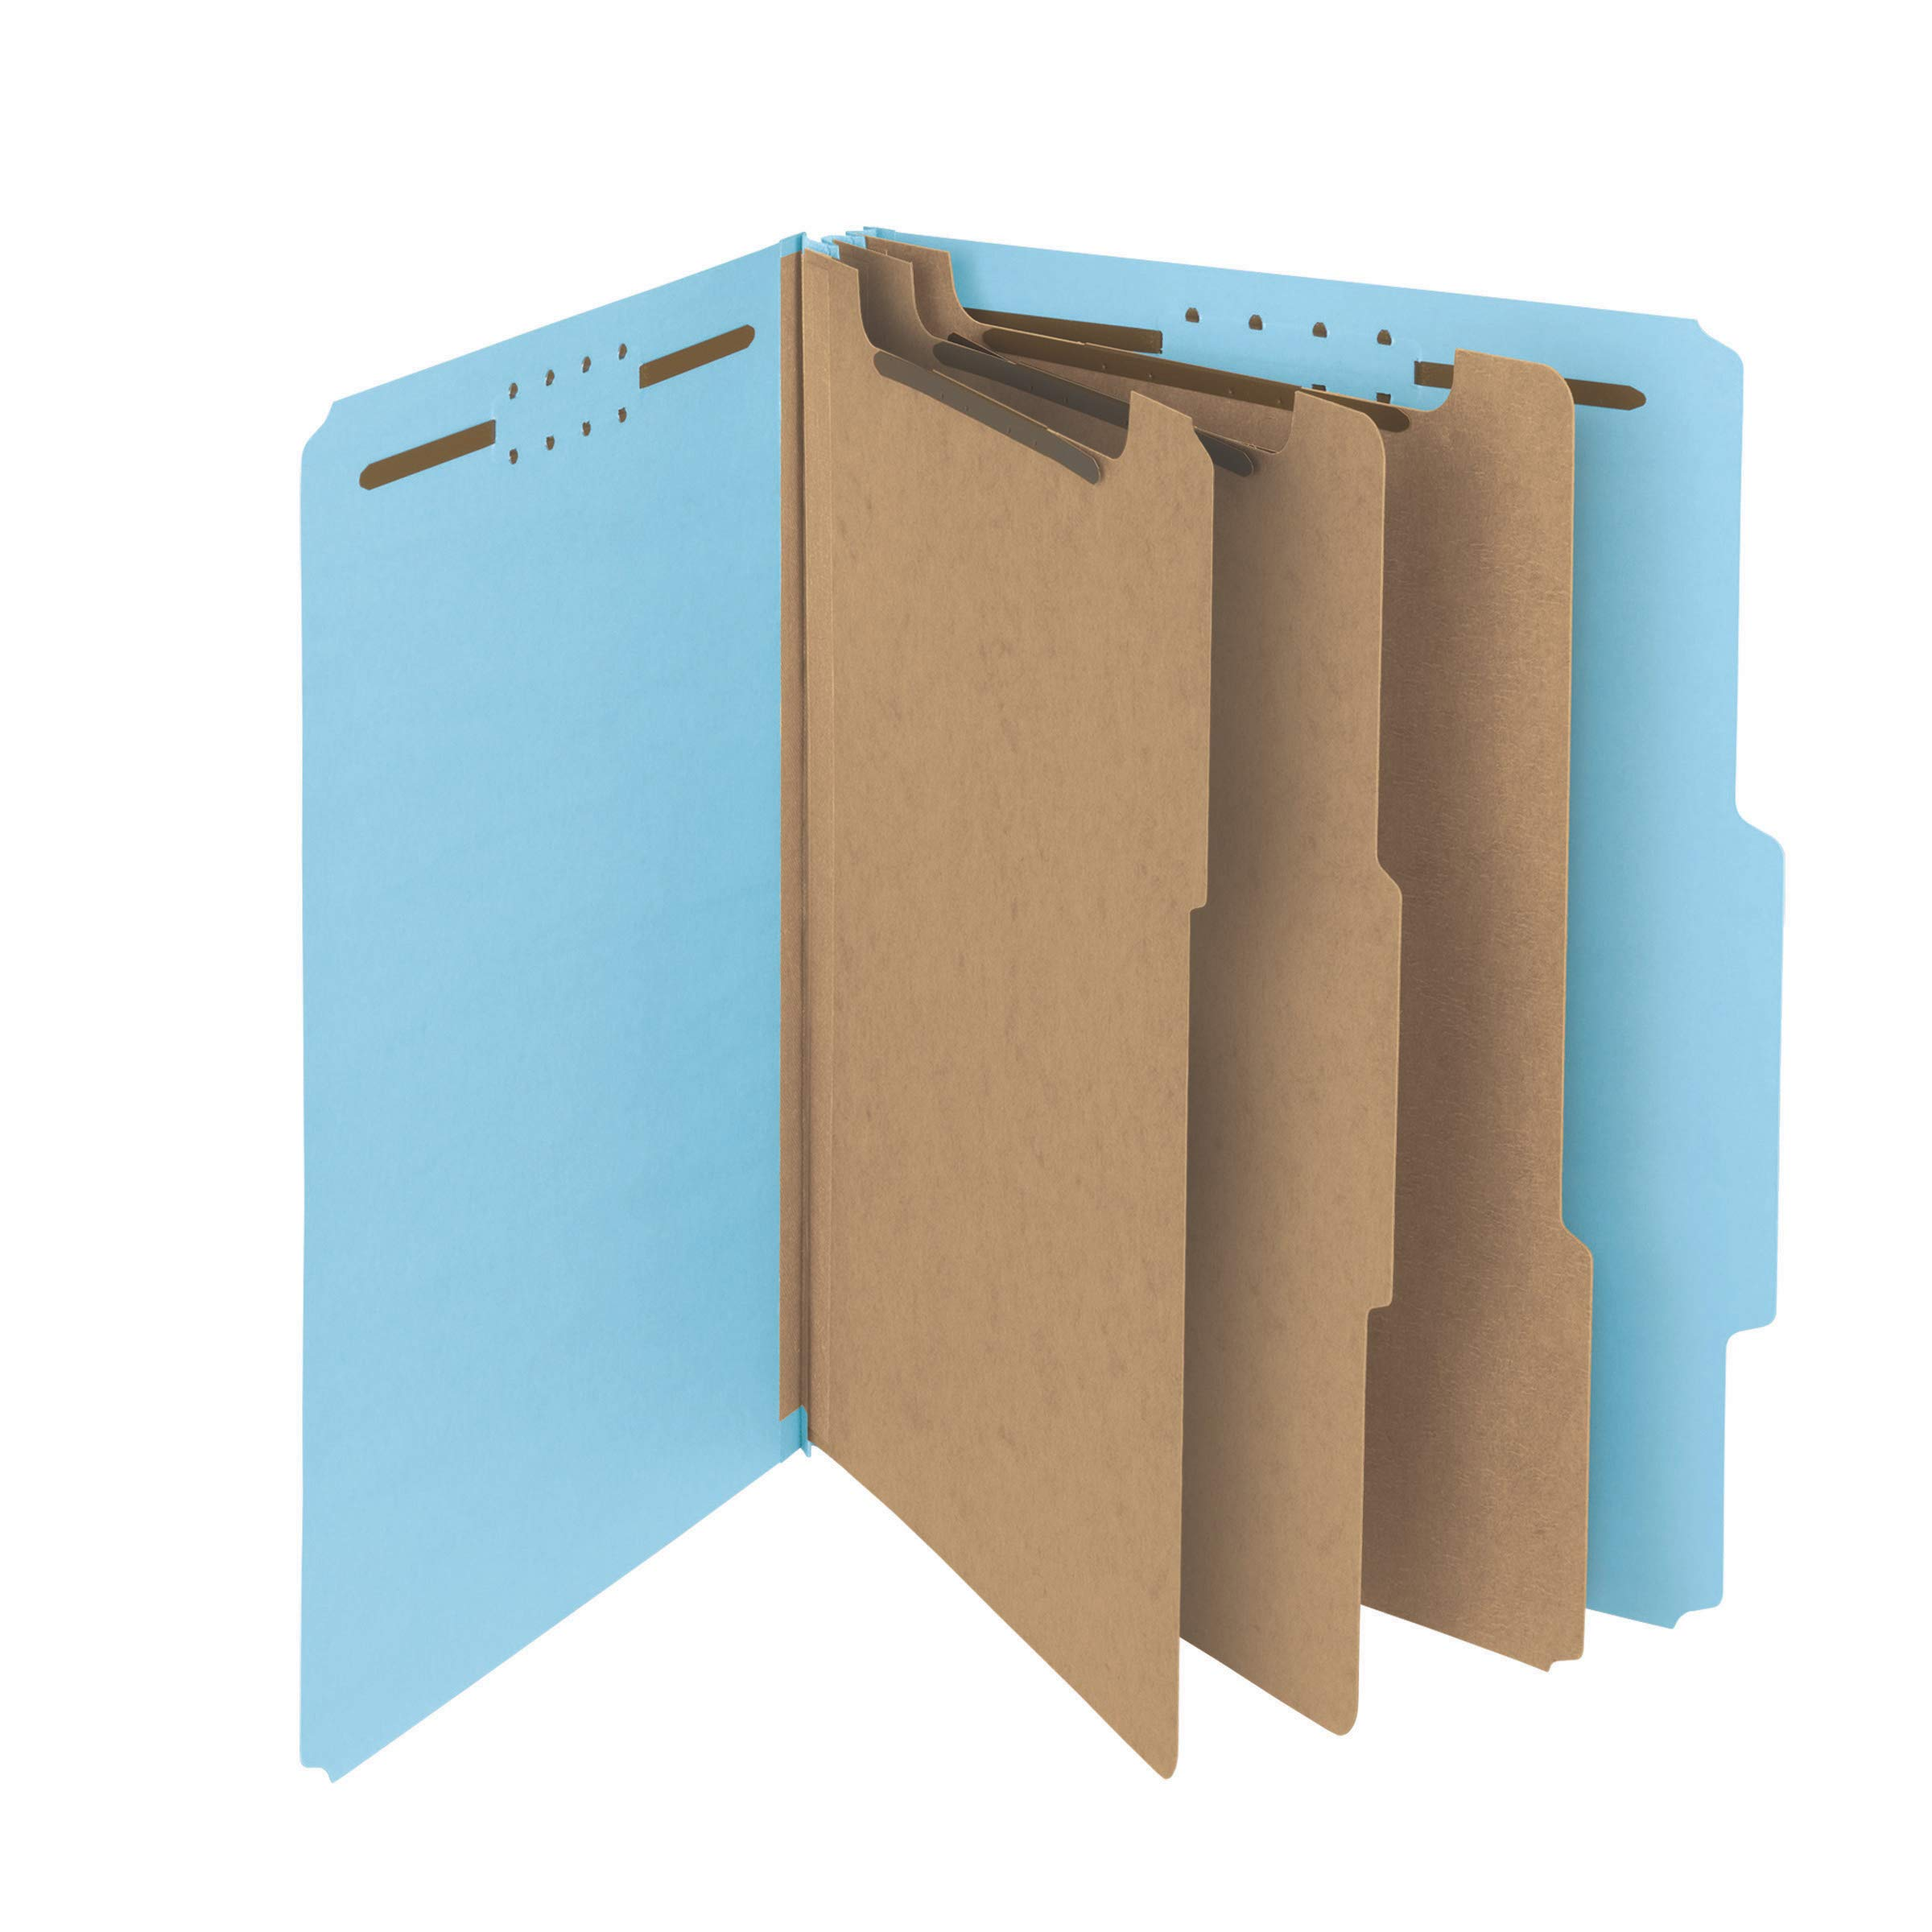 Smead 100% Recycled Pressboard Classification File Folder, 3 Dividers, 3'' Expansion, Letter Size, Blue, 10 per Box (14090) by Smead